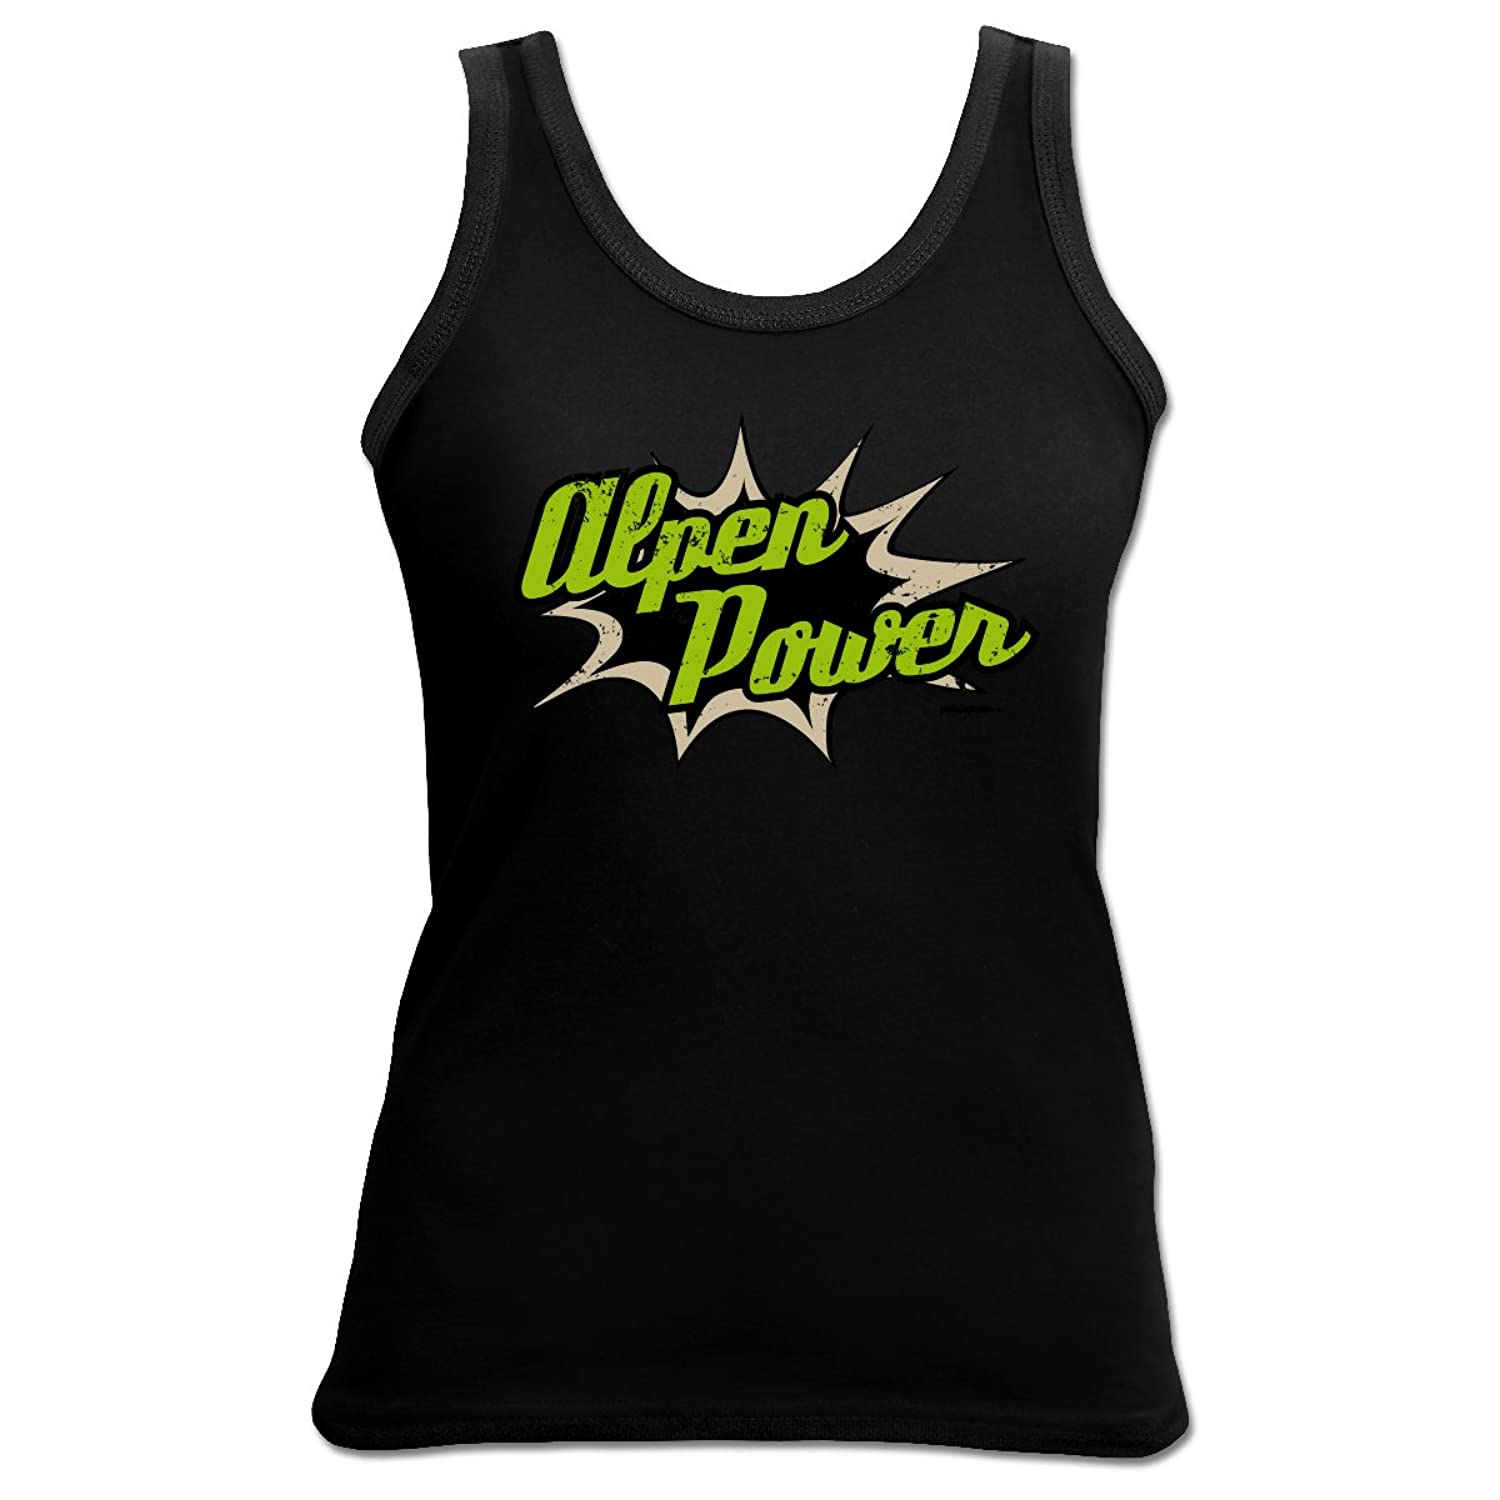 Tank Top Alpen Power Damenshirt Damen Apres Ski Funshirt lustiger Aufdruck Girlie Girl cool